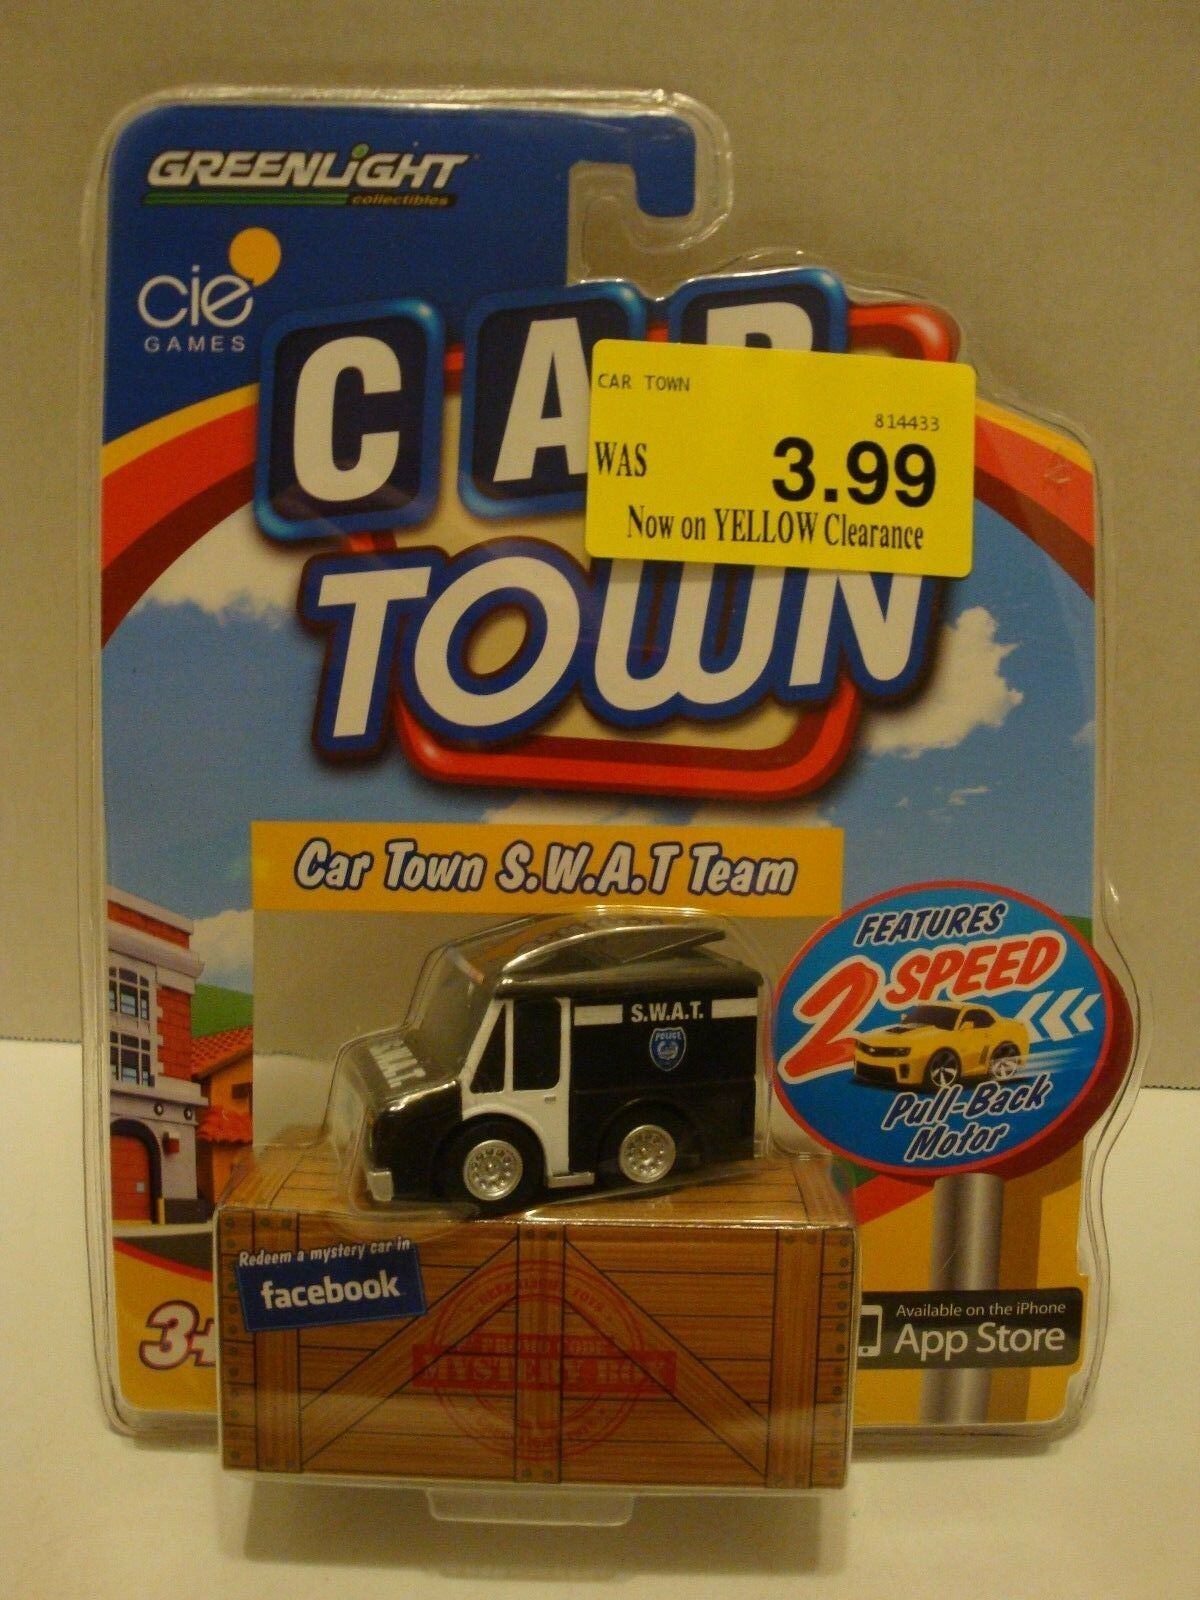 VAN  CAR TOWN SERIES ISSUE #2 GREENLIGHT ACTION TOY BLACK /& WHITE S.W.A.T